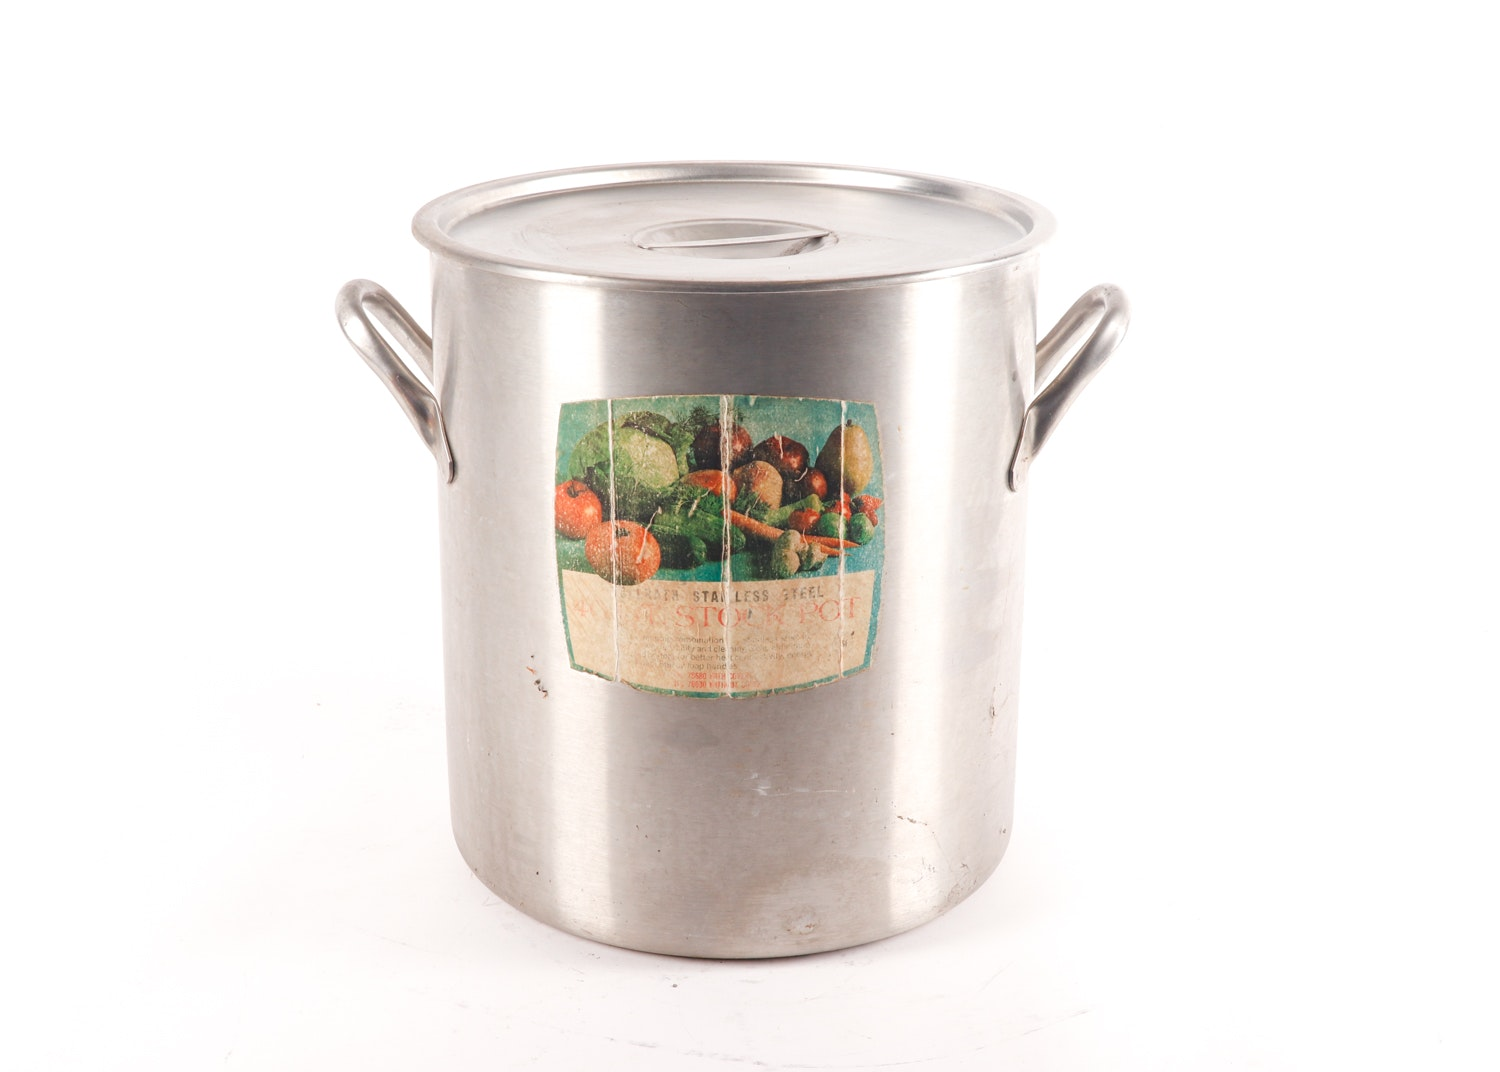 Vollrath Stainless Steel 40-Qt. Stock Pot